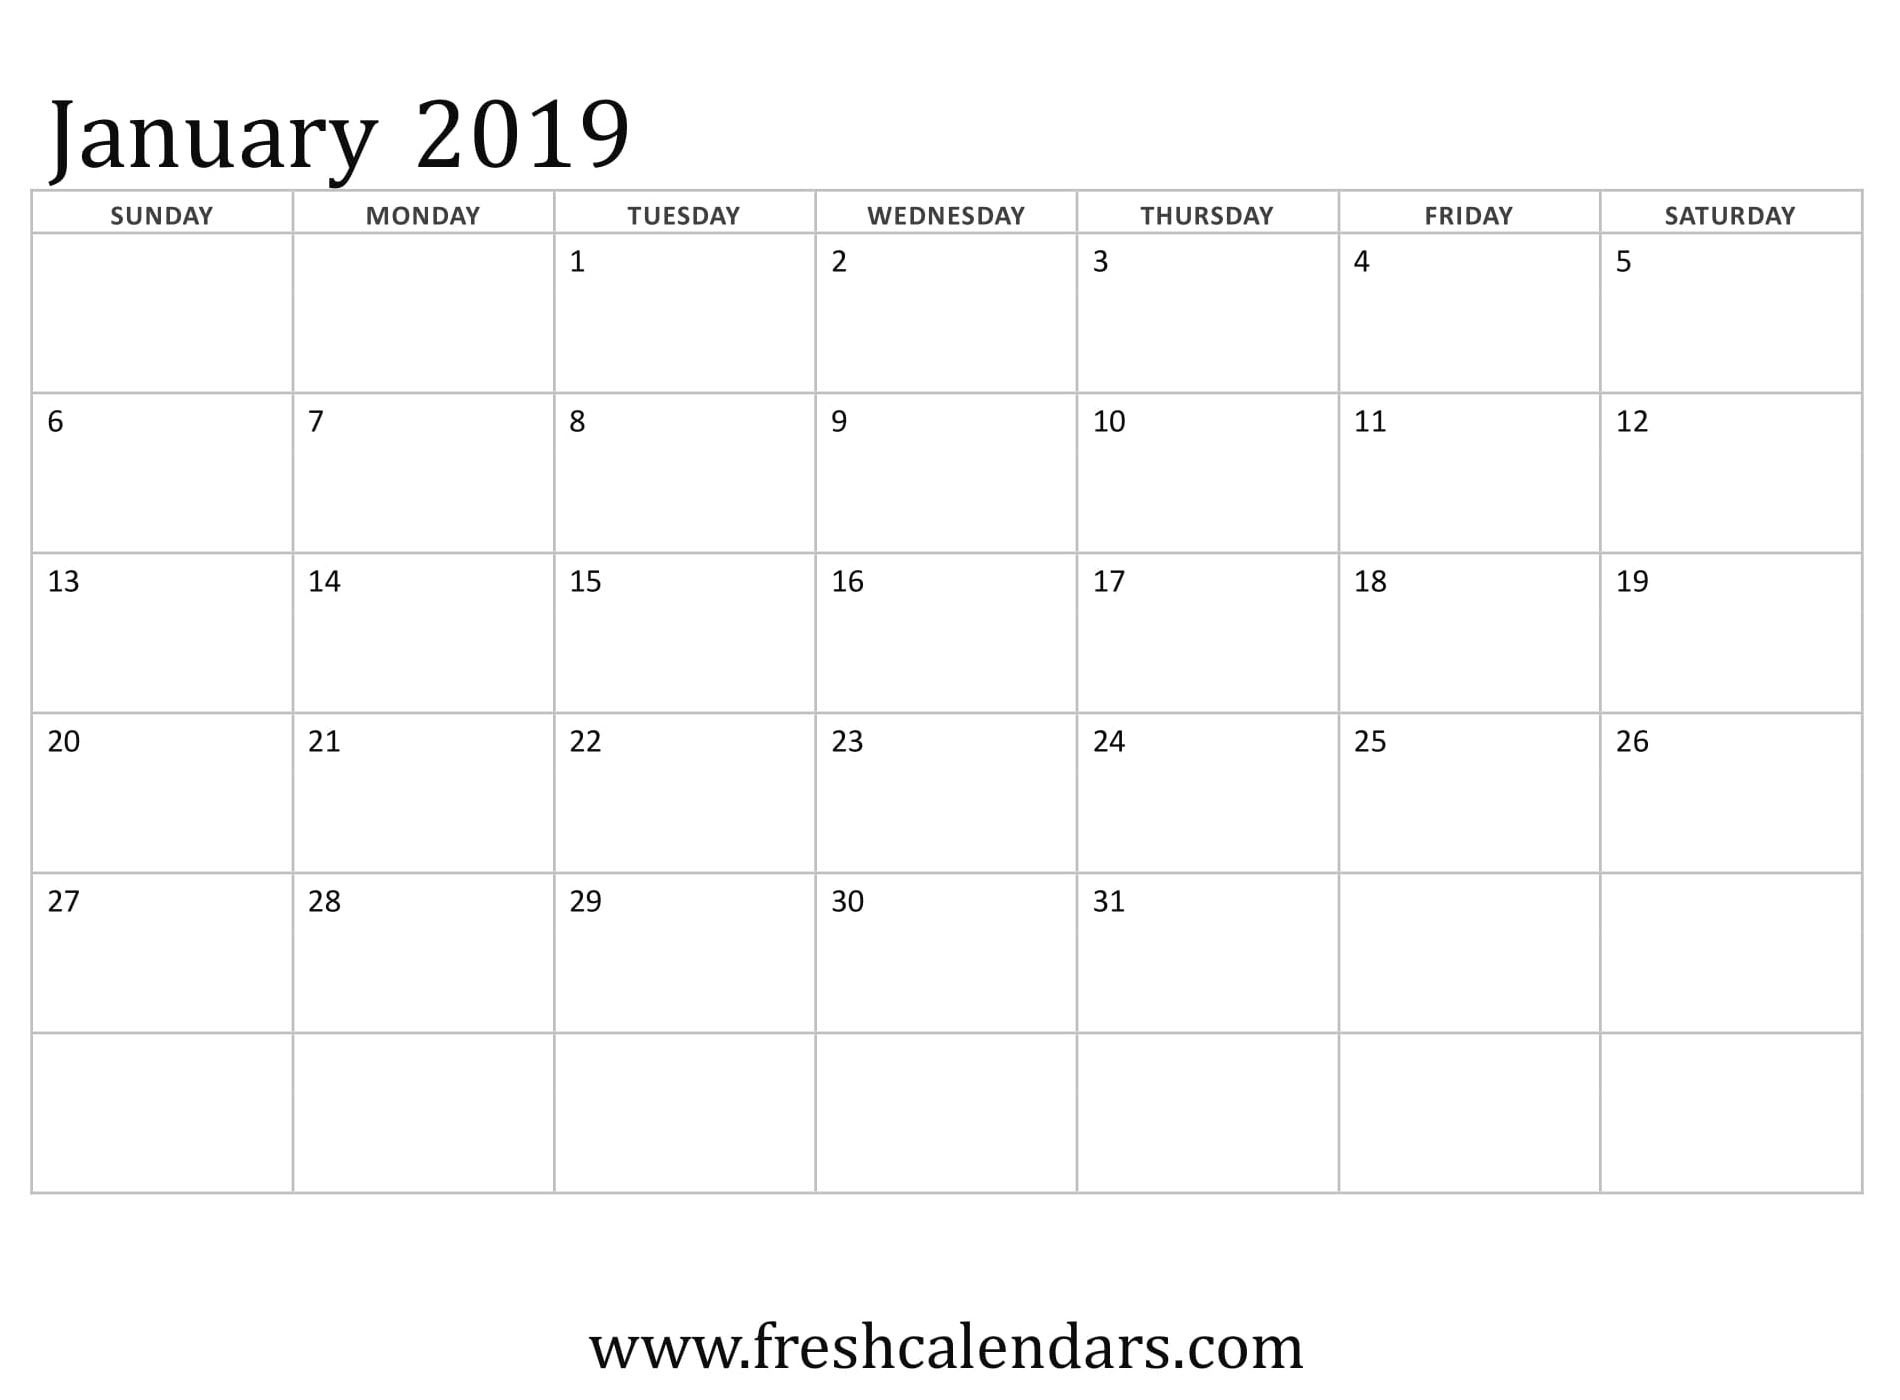 February 2020 Calendar Waterproof | My Way Of Learning Is Design-January 2020 Calendar Waterproof